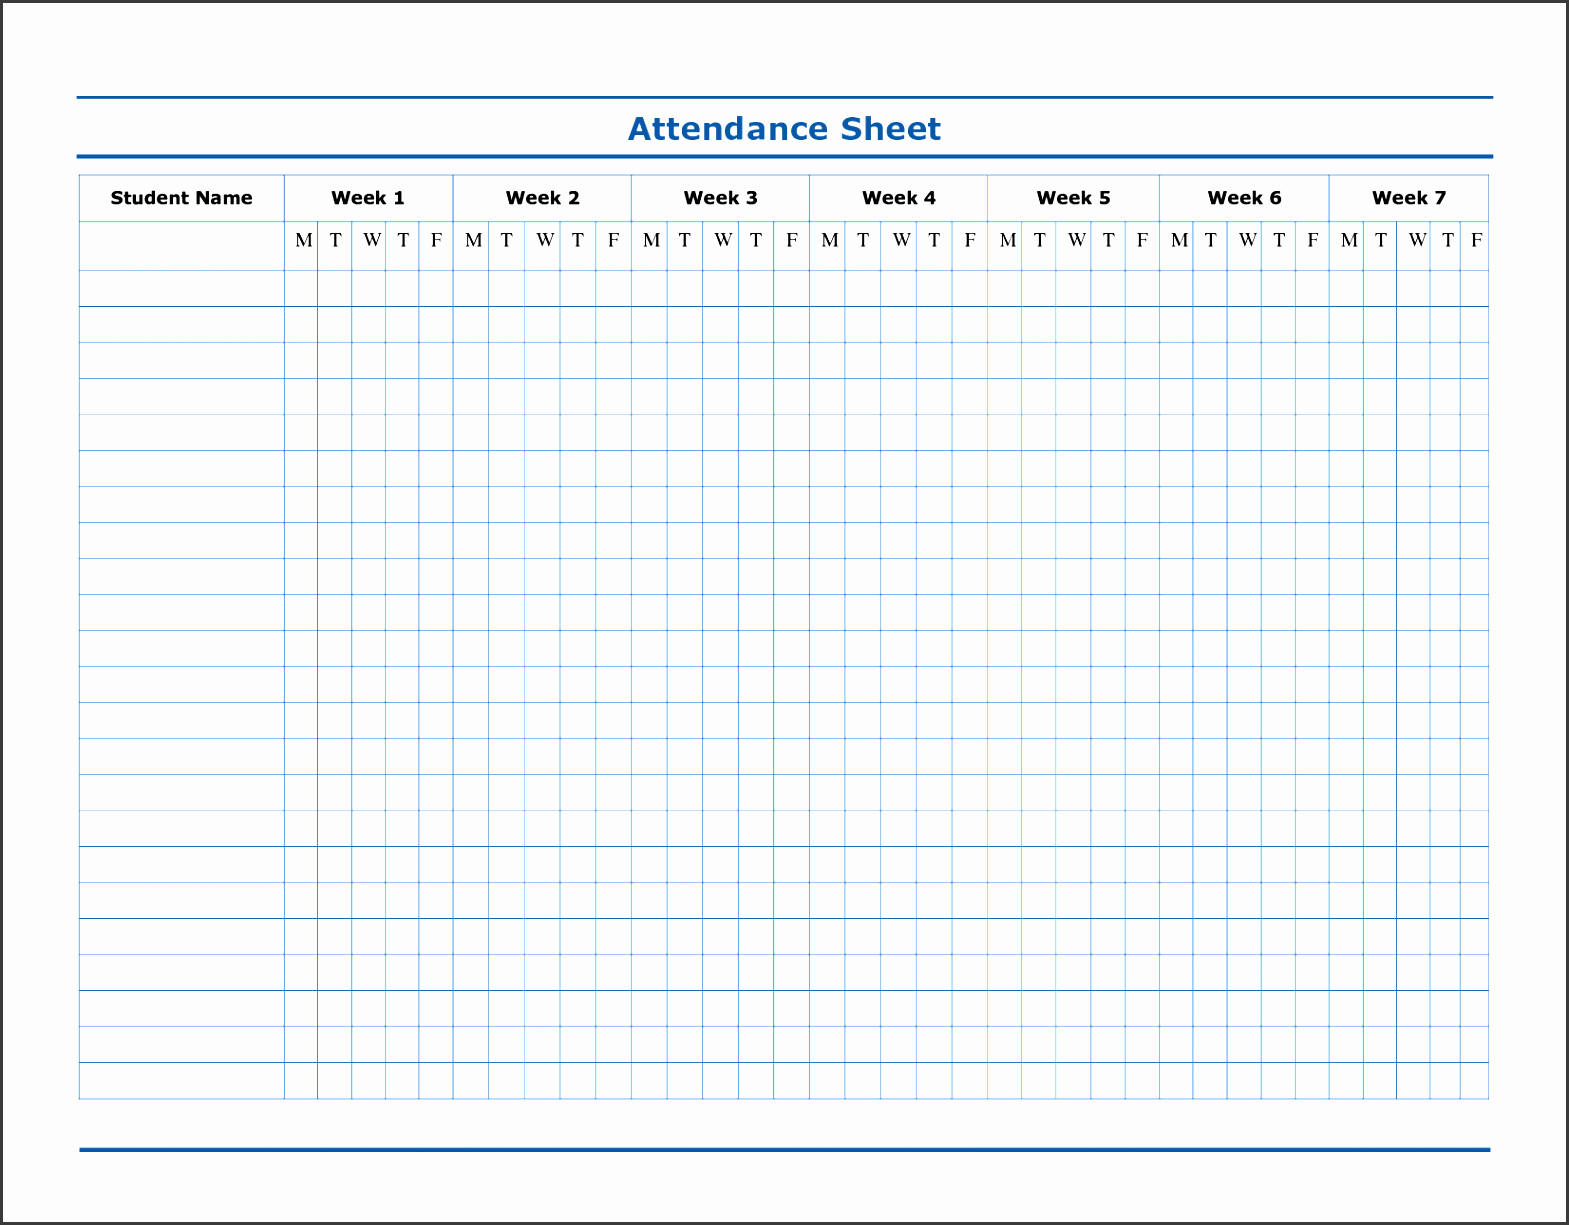 choose from over 20 free sign in and sign up sheets templates include excel spreadsheets and word docs for recording attendance event planning